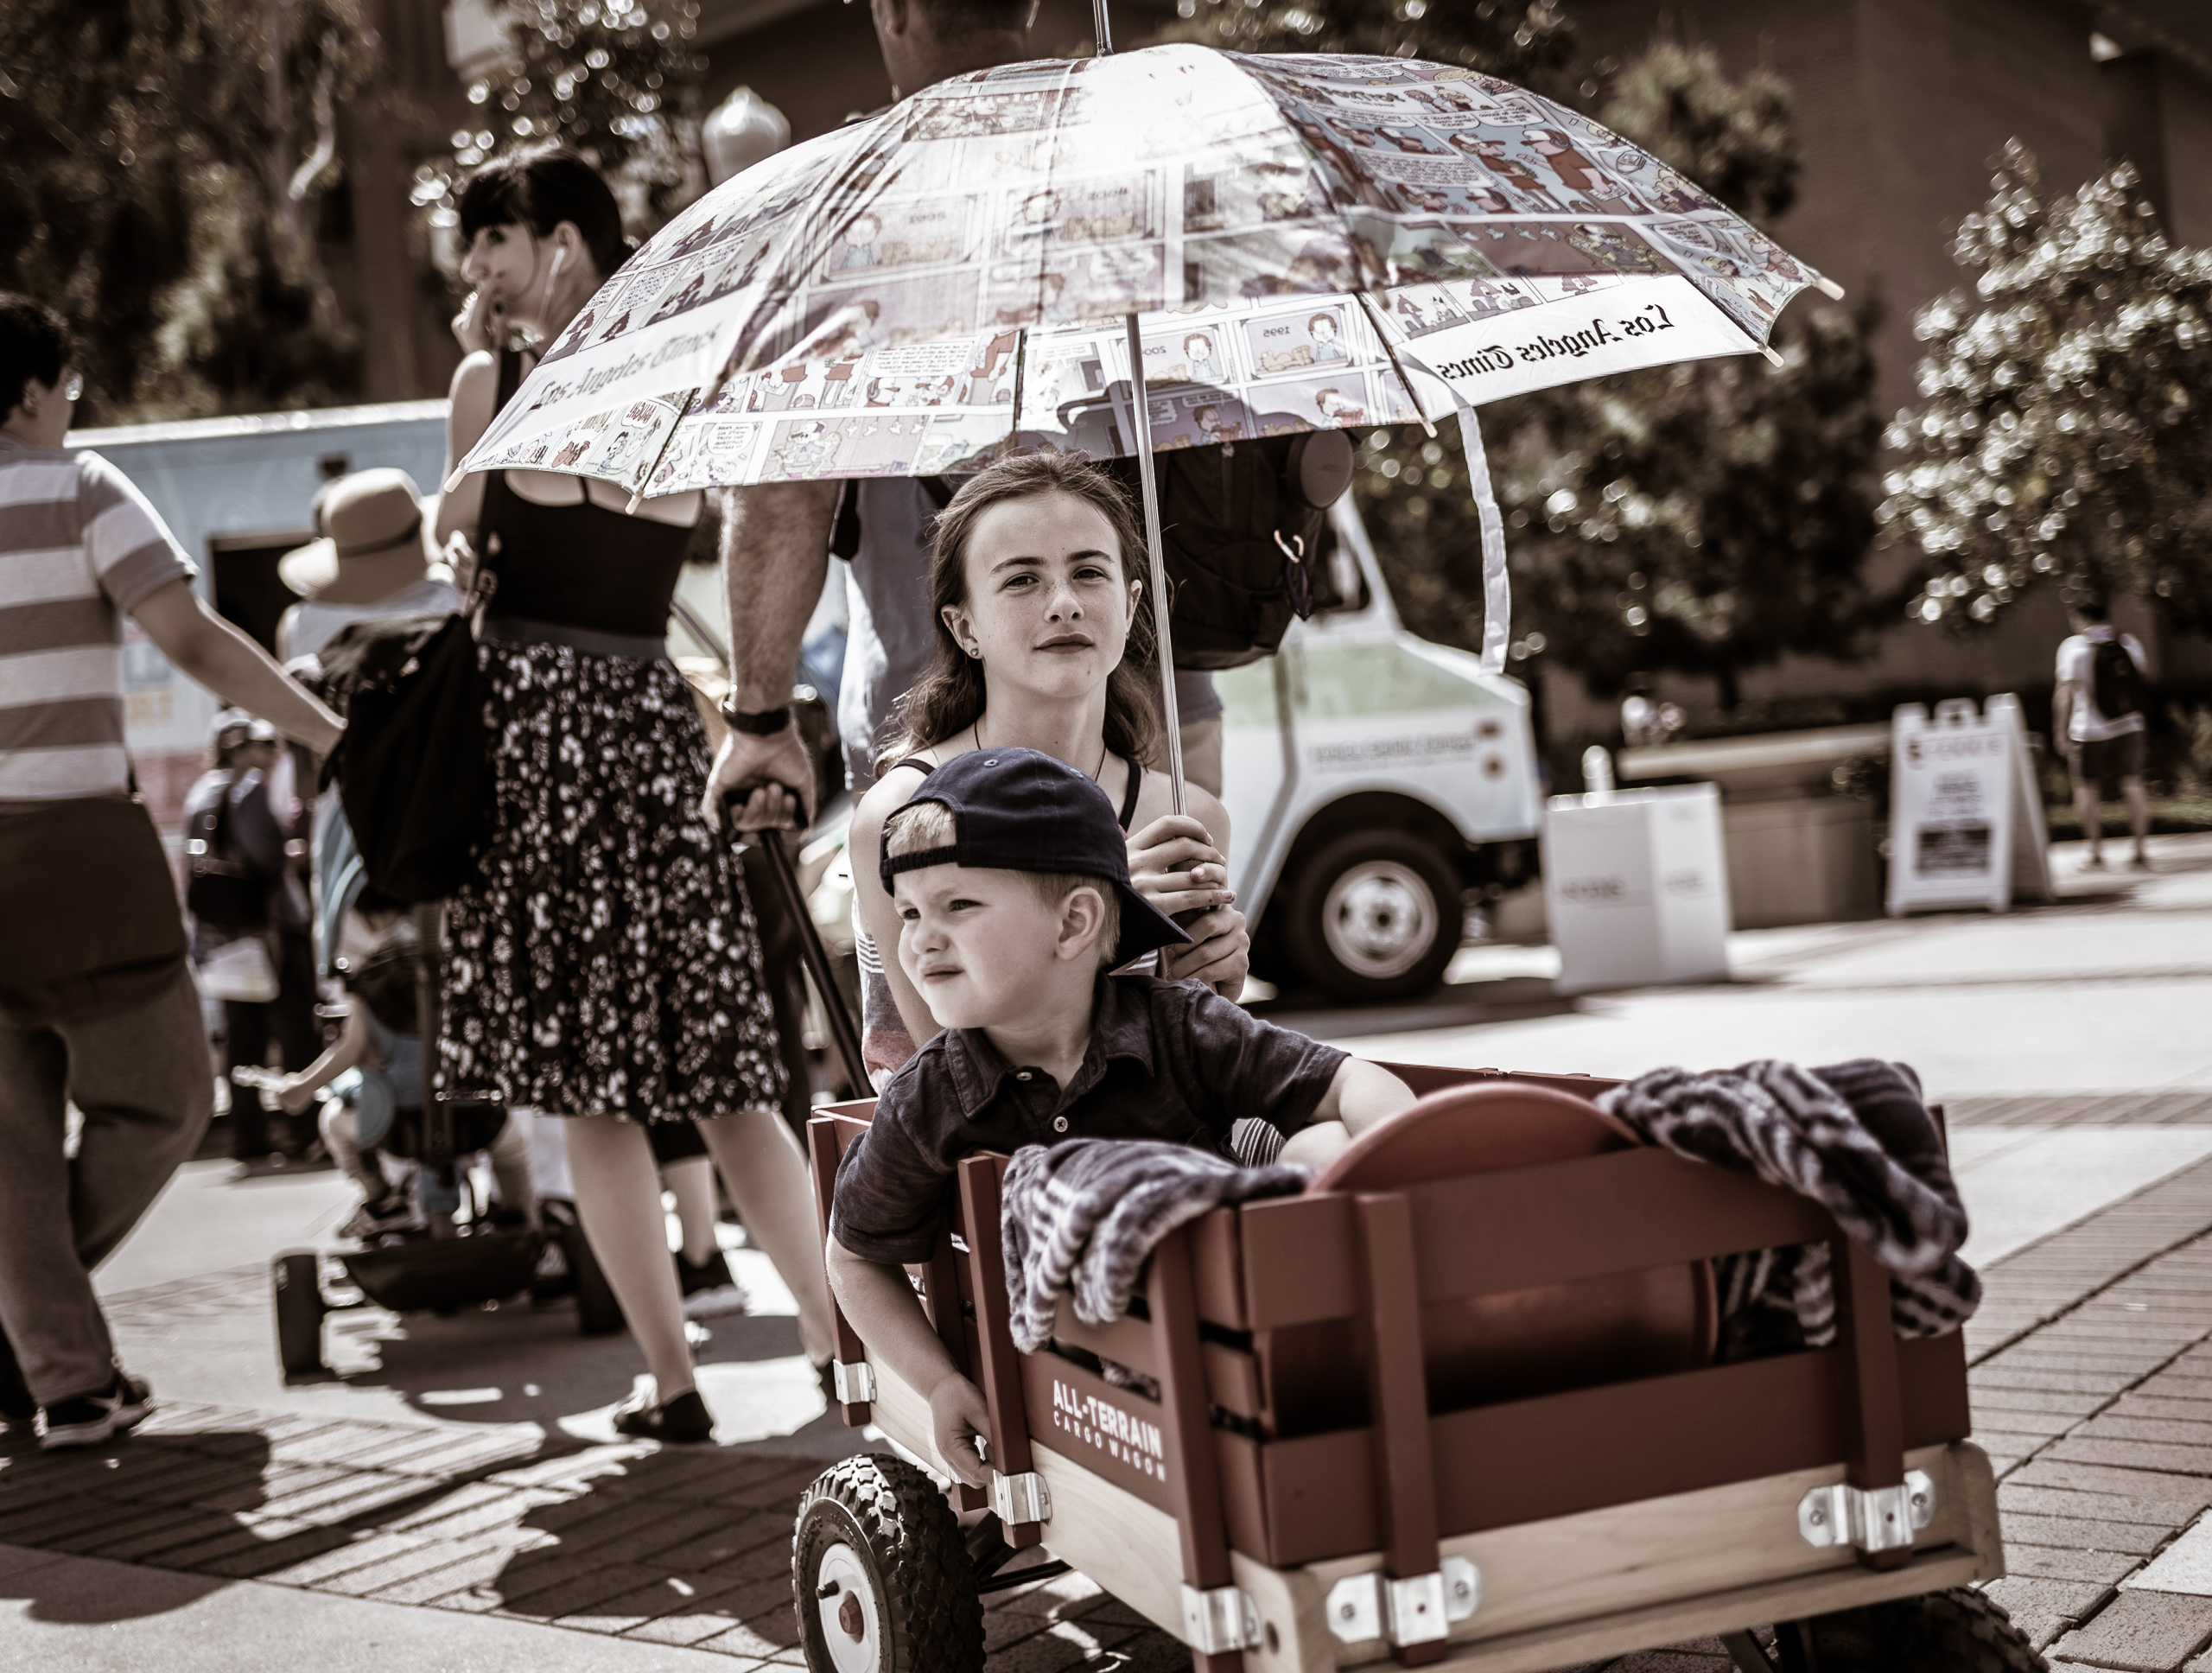 "A girl and her younger brother sit in a red wagon pulled toward a food truck by their dad. The girl holds a large ""Los Angeles Times"" umbrella. The girl looks at the camera. Her brother wears a baseball cap backwards and gazes off into the distance. The camera is low and on the level of the kids in the wagon."